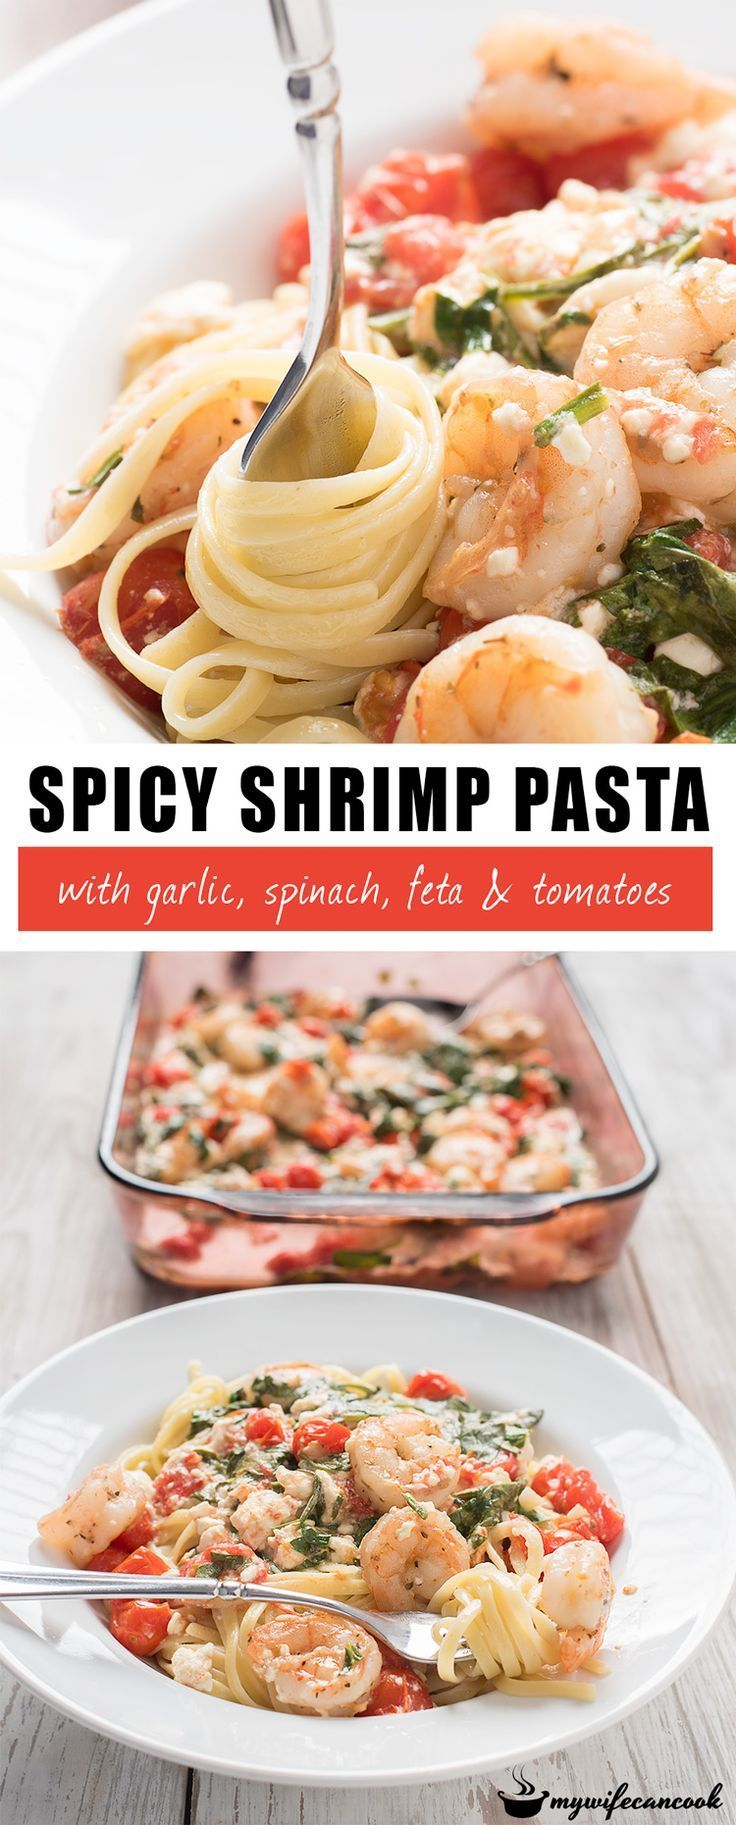 Spicy Shrimp Pasta! This spicy shrimp pasta with feta cheese, garlic, spinach, and tomatoes is a favorite date night dish in our house. It pairs well with strawberry daiquiris or another frozen drink. We like it as a shrimp linguini, but other pasta will work and you can even use zoodles if you are looking for a low carb option. Make sure you smush some of the feta down while cooking so that it blends with the white wine sauce. You can find all the spicy shrimp pasta tips over on our blog.